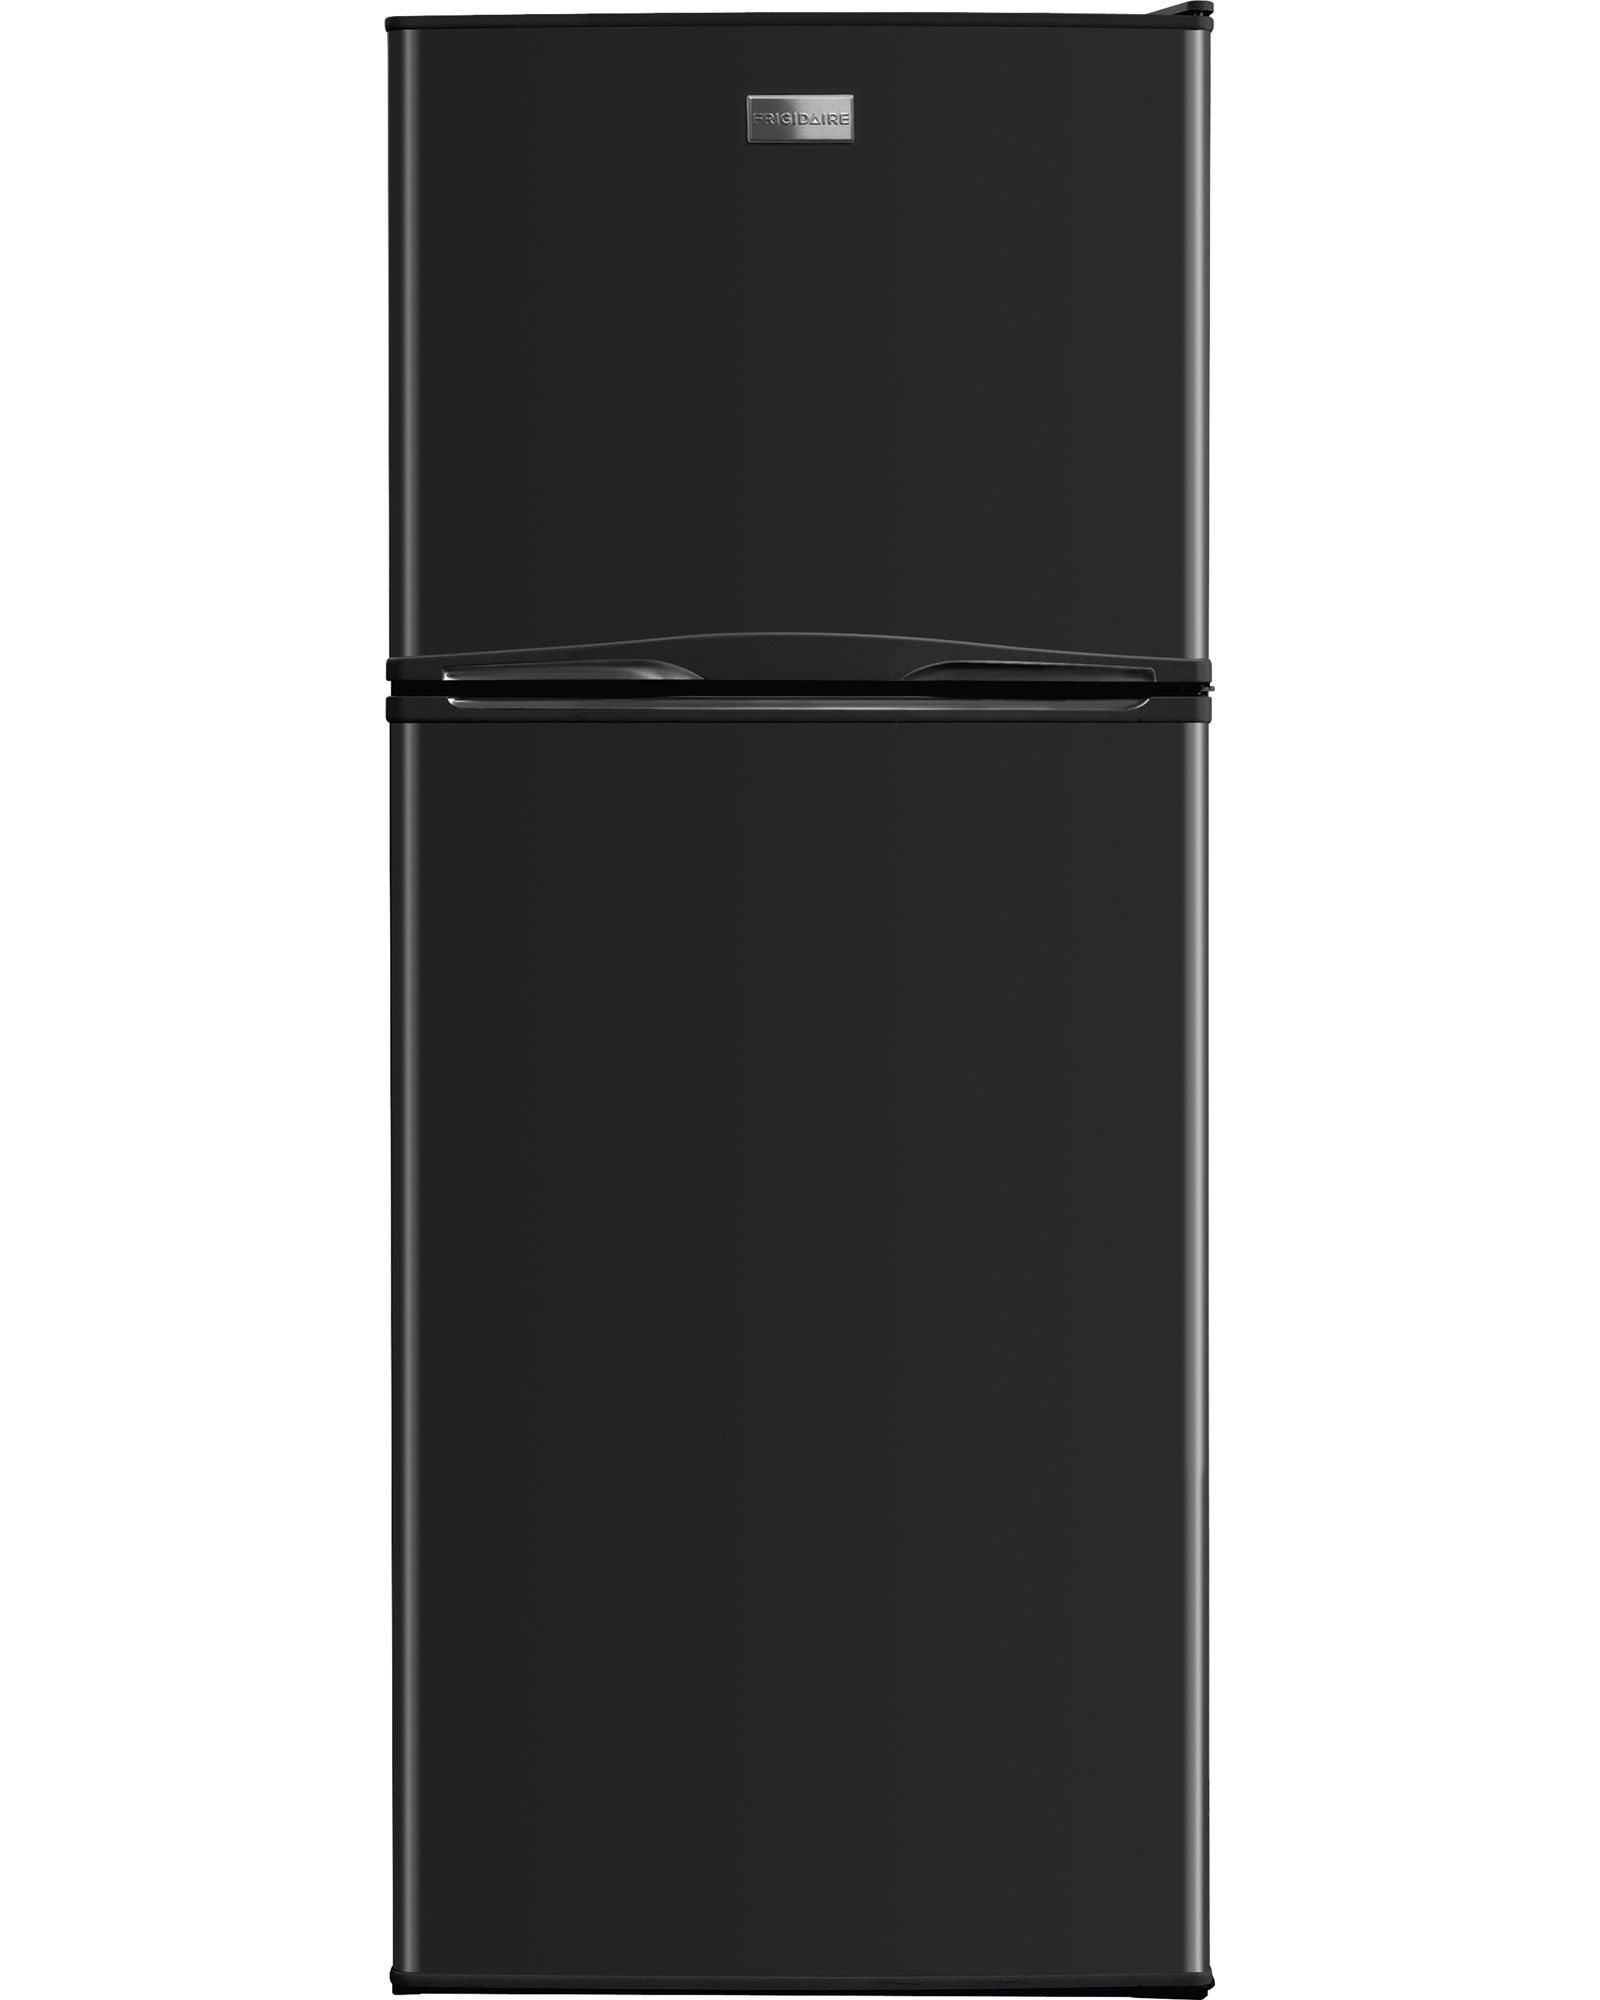 The Strong Frigidaire 10 Cu Ft Top Freezer Refrigerator Strong Is Great For Smaller Kitchens And Apartment Living It S Eas Fridges Under 400kw Top F